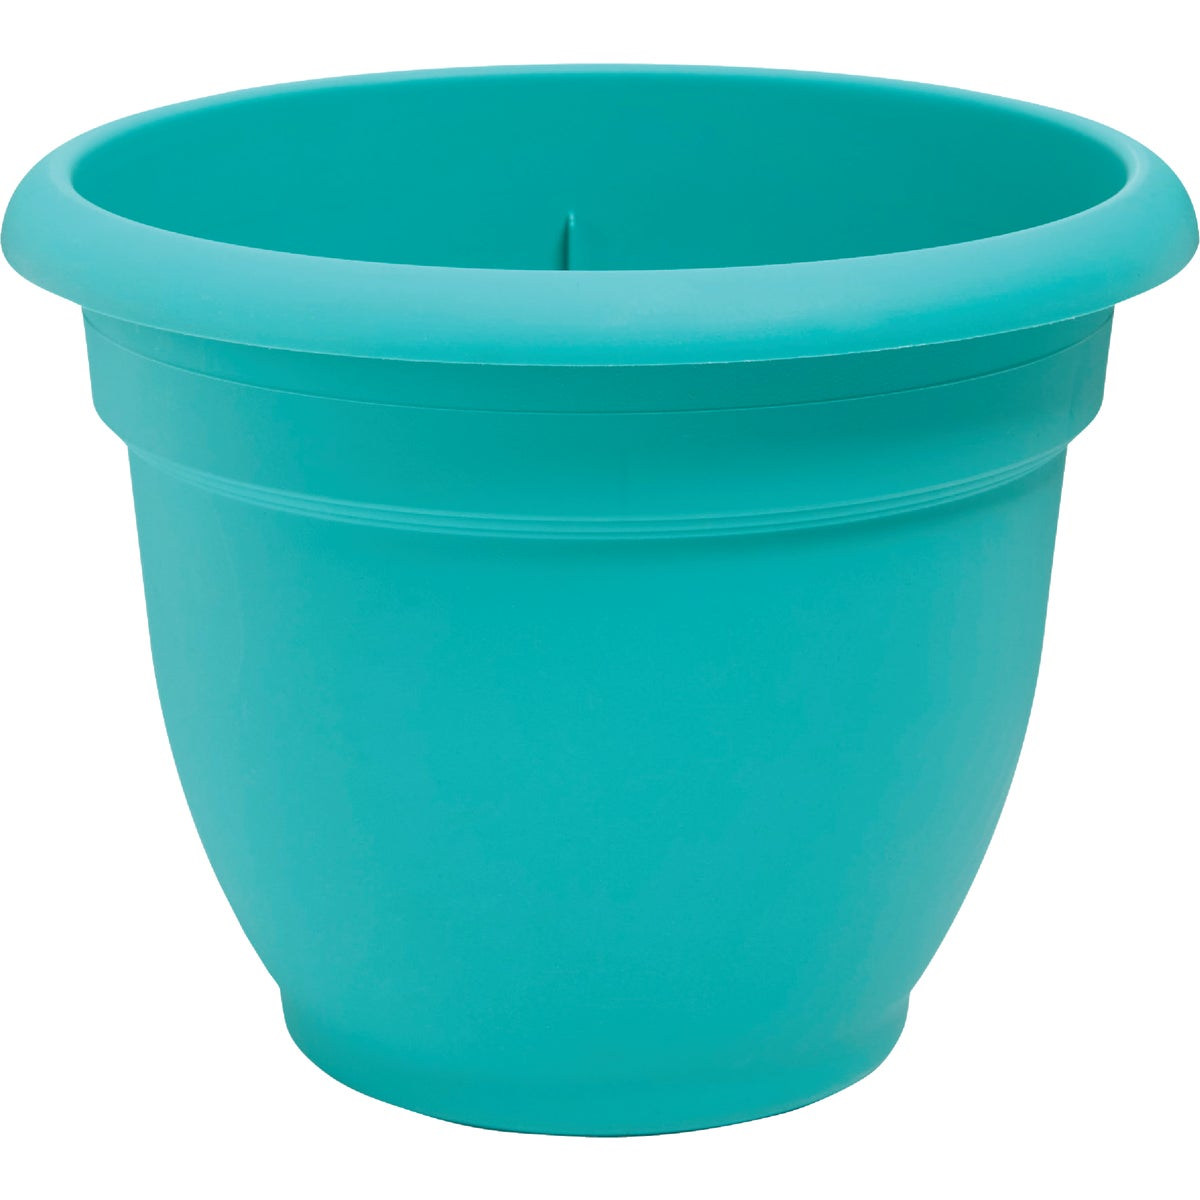 "10"" CAPRI BRZ ARIANA POT - 465101-1001 by Fiskars Brands Inc"